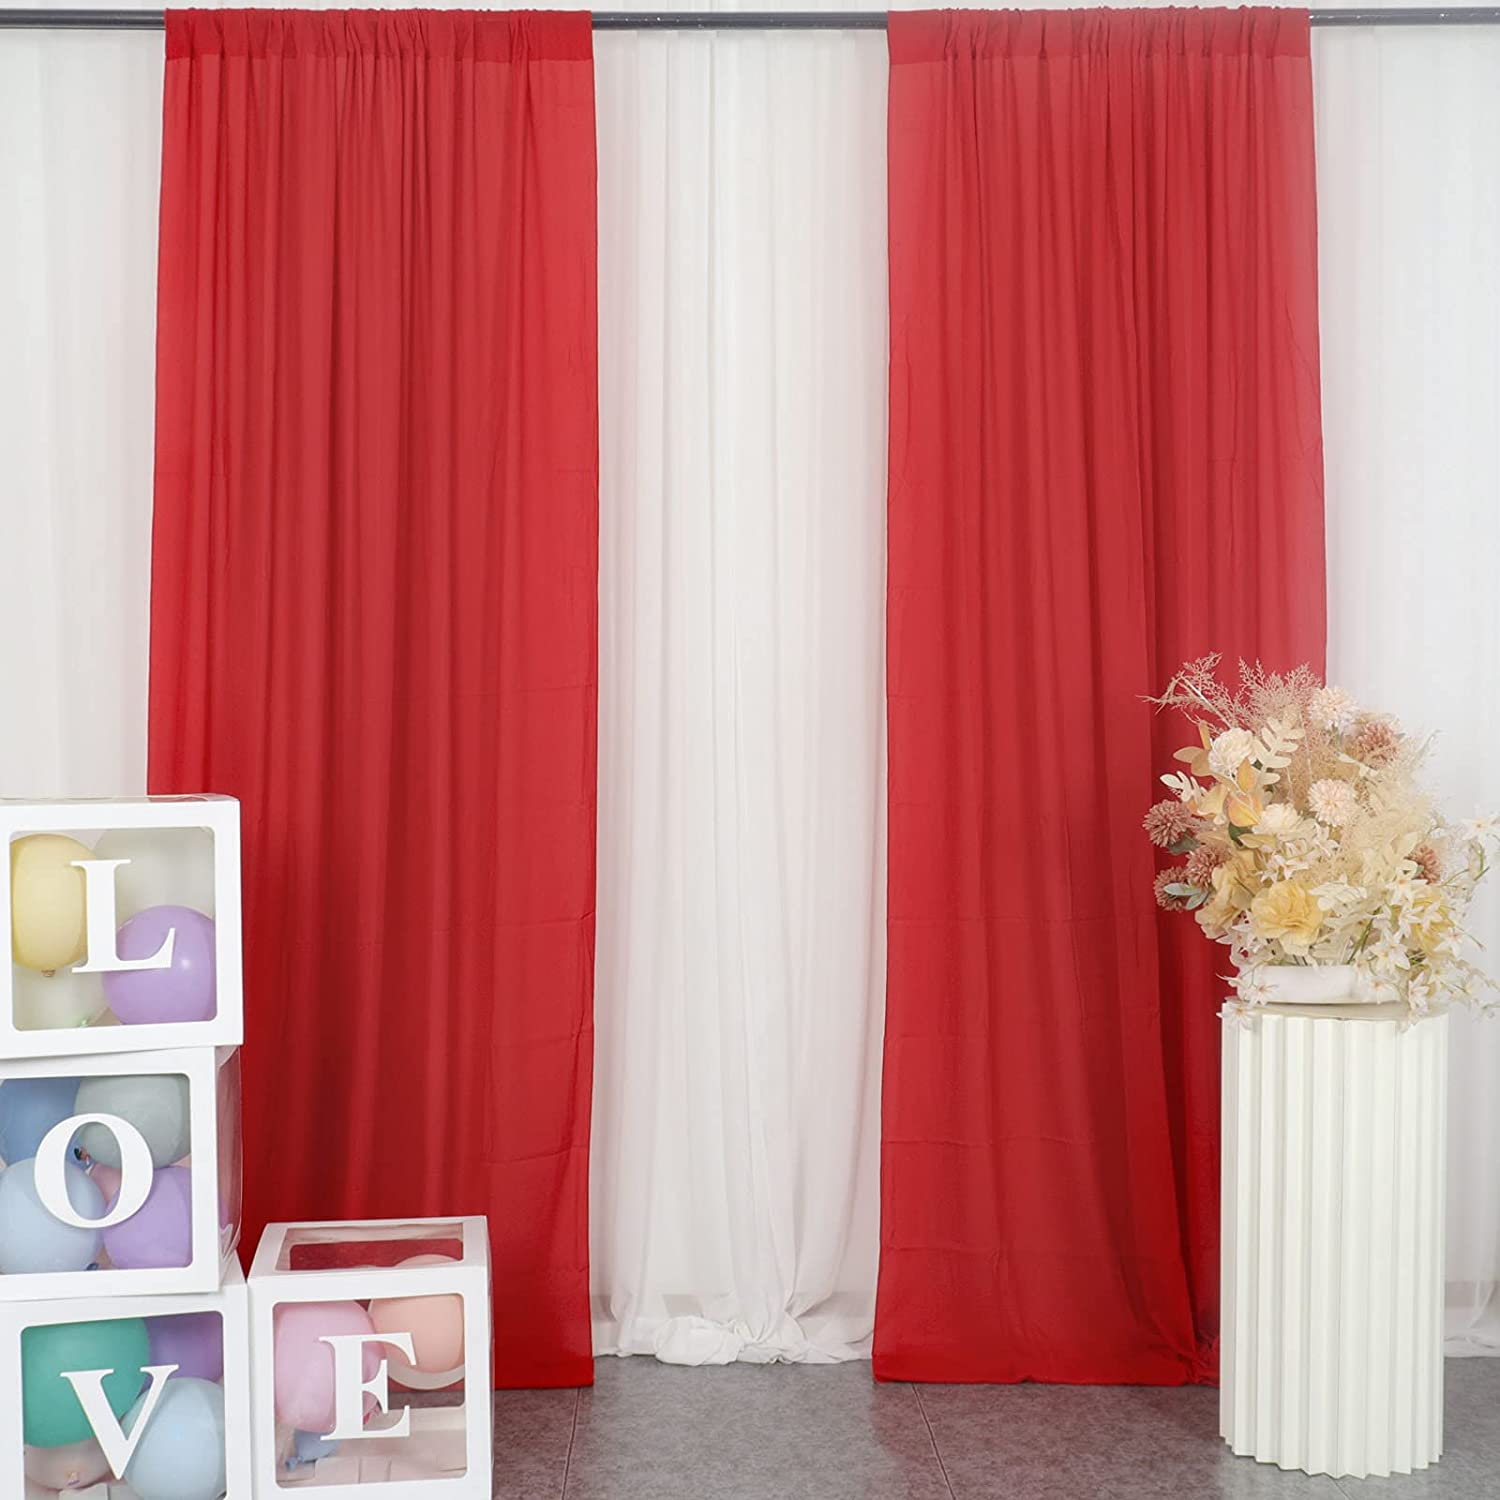 Sale Max 75% OFF SALE% OFF Red Chiffon Backdrop Curtain-2 Panels Chiffo Wedding 29x120-Inch